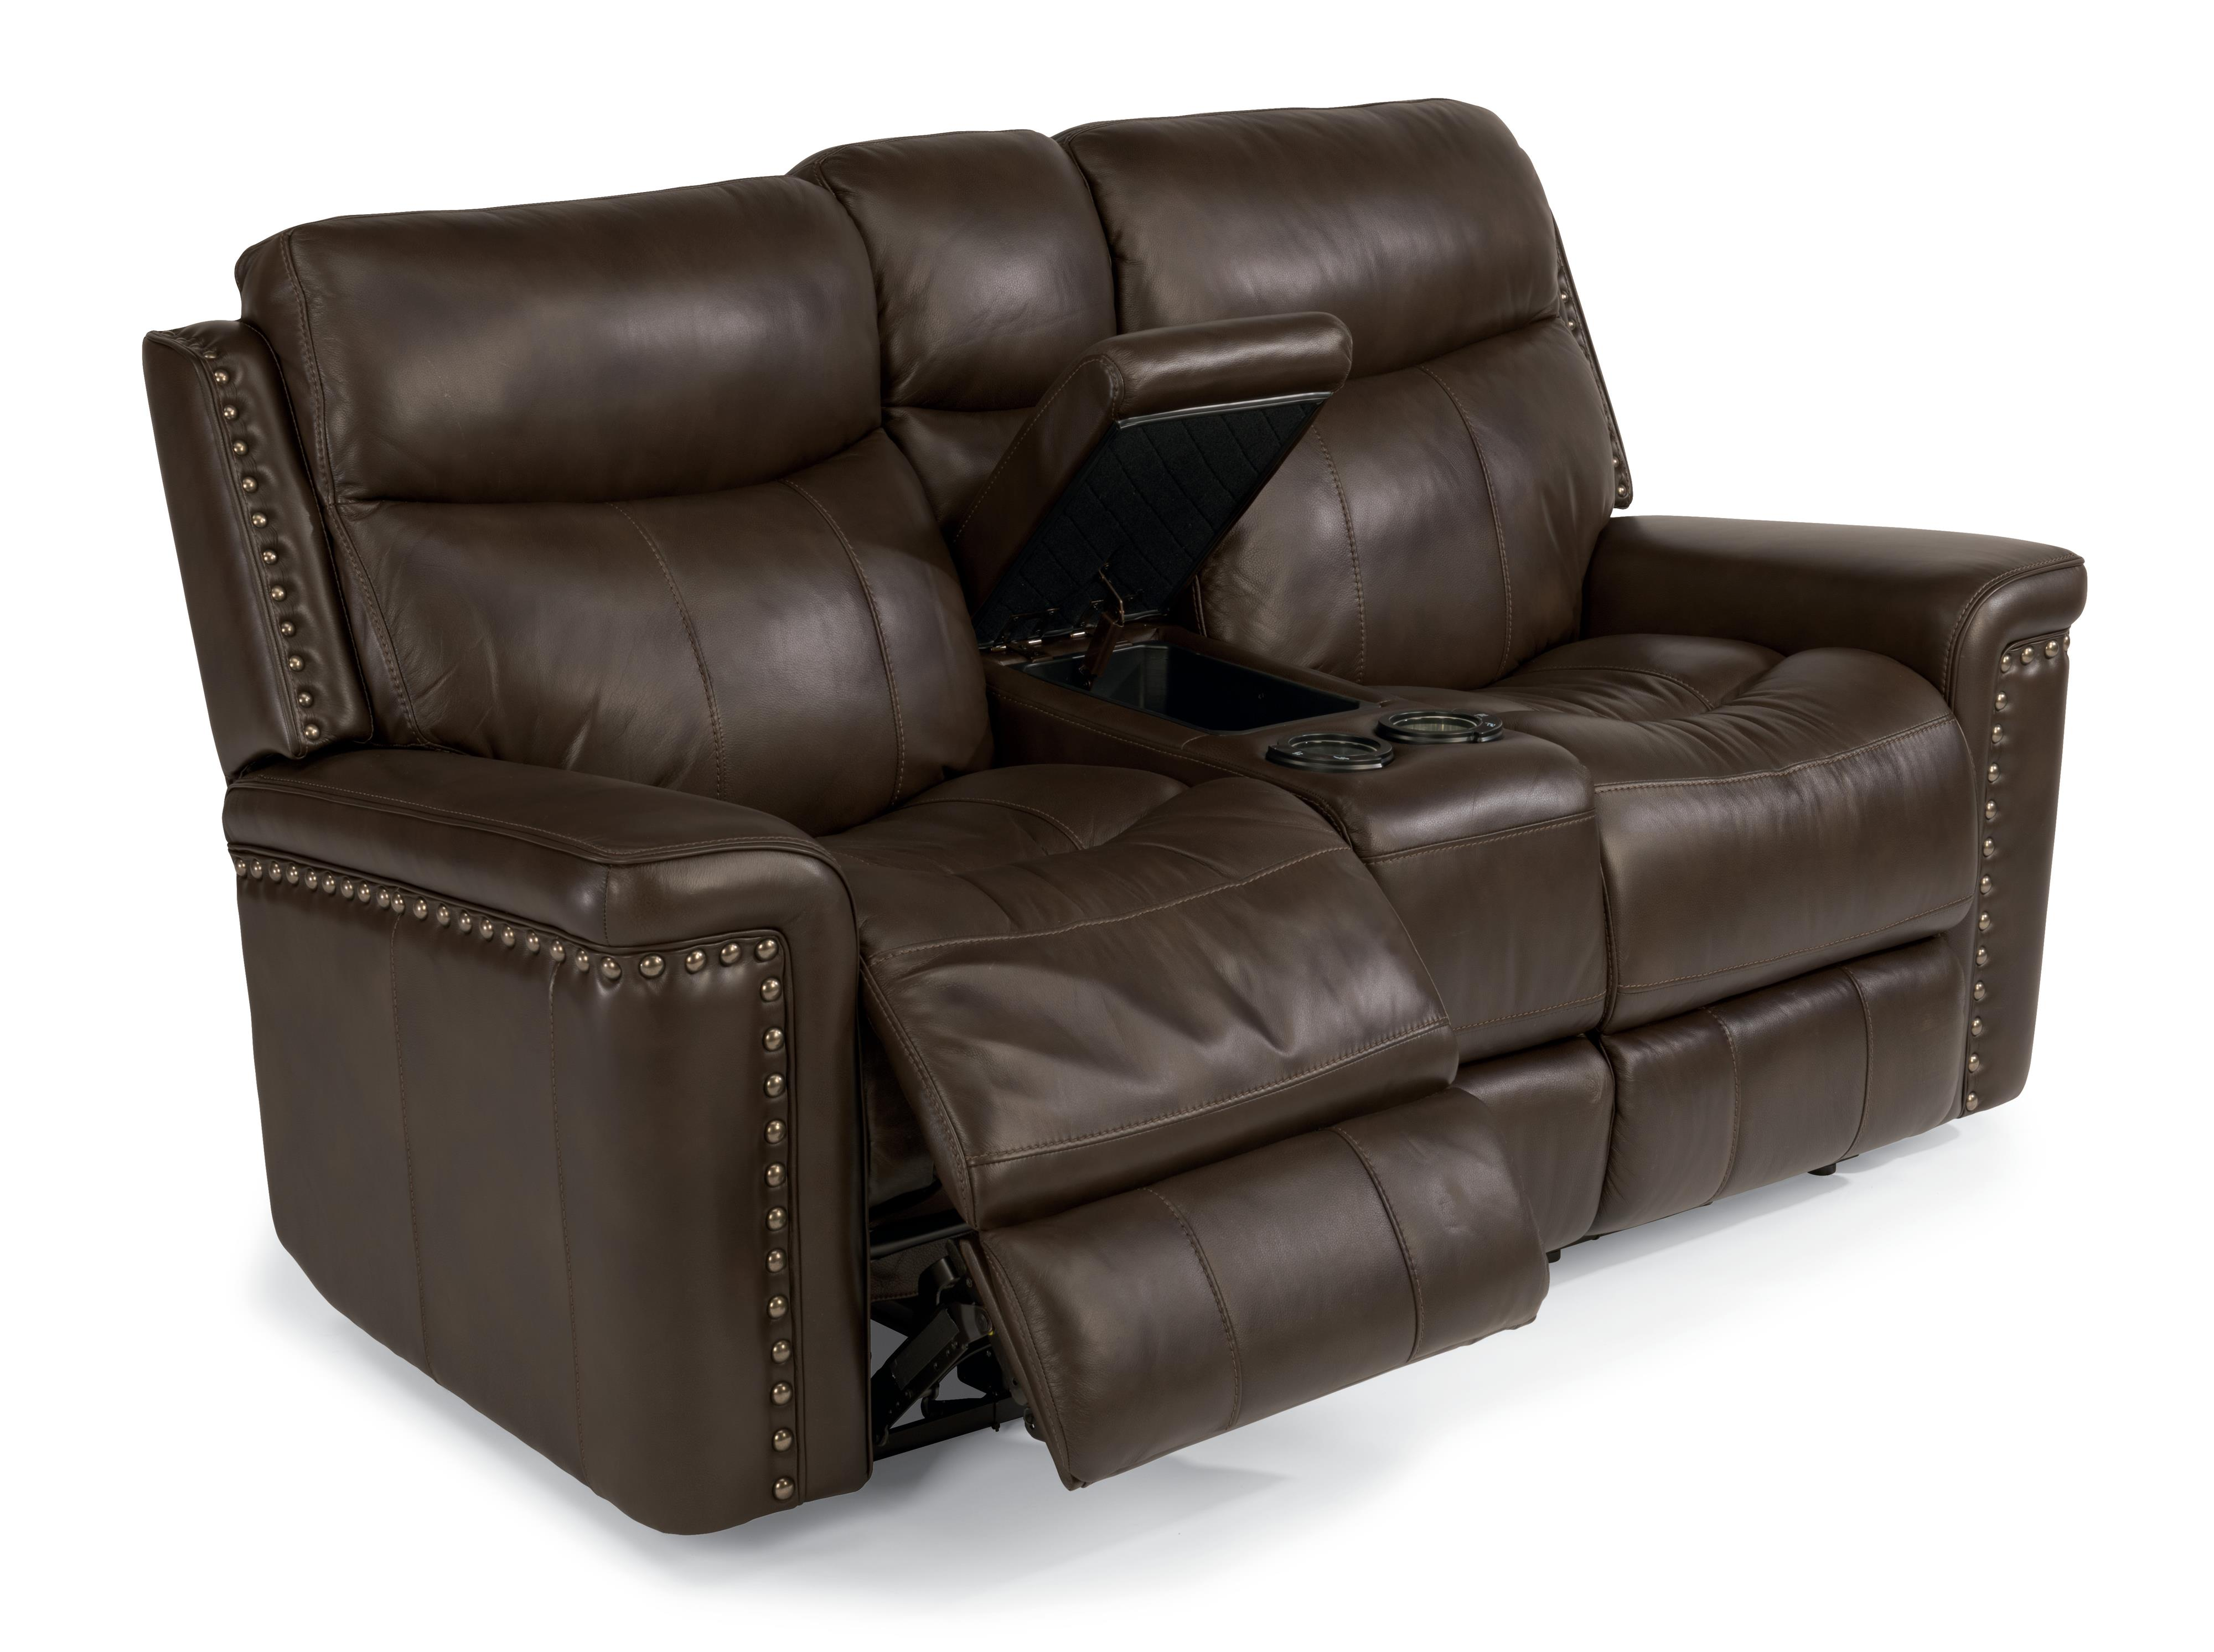 Flexsteel Latitudes-Grover Power Reclining Love Seat with Console - Item Number: 1339-604P-014-74